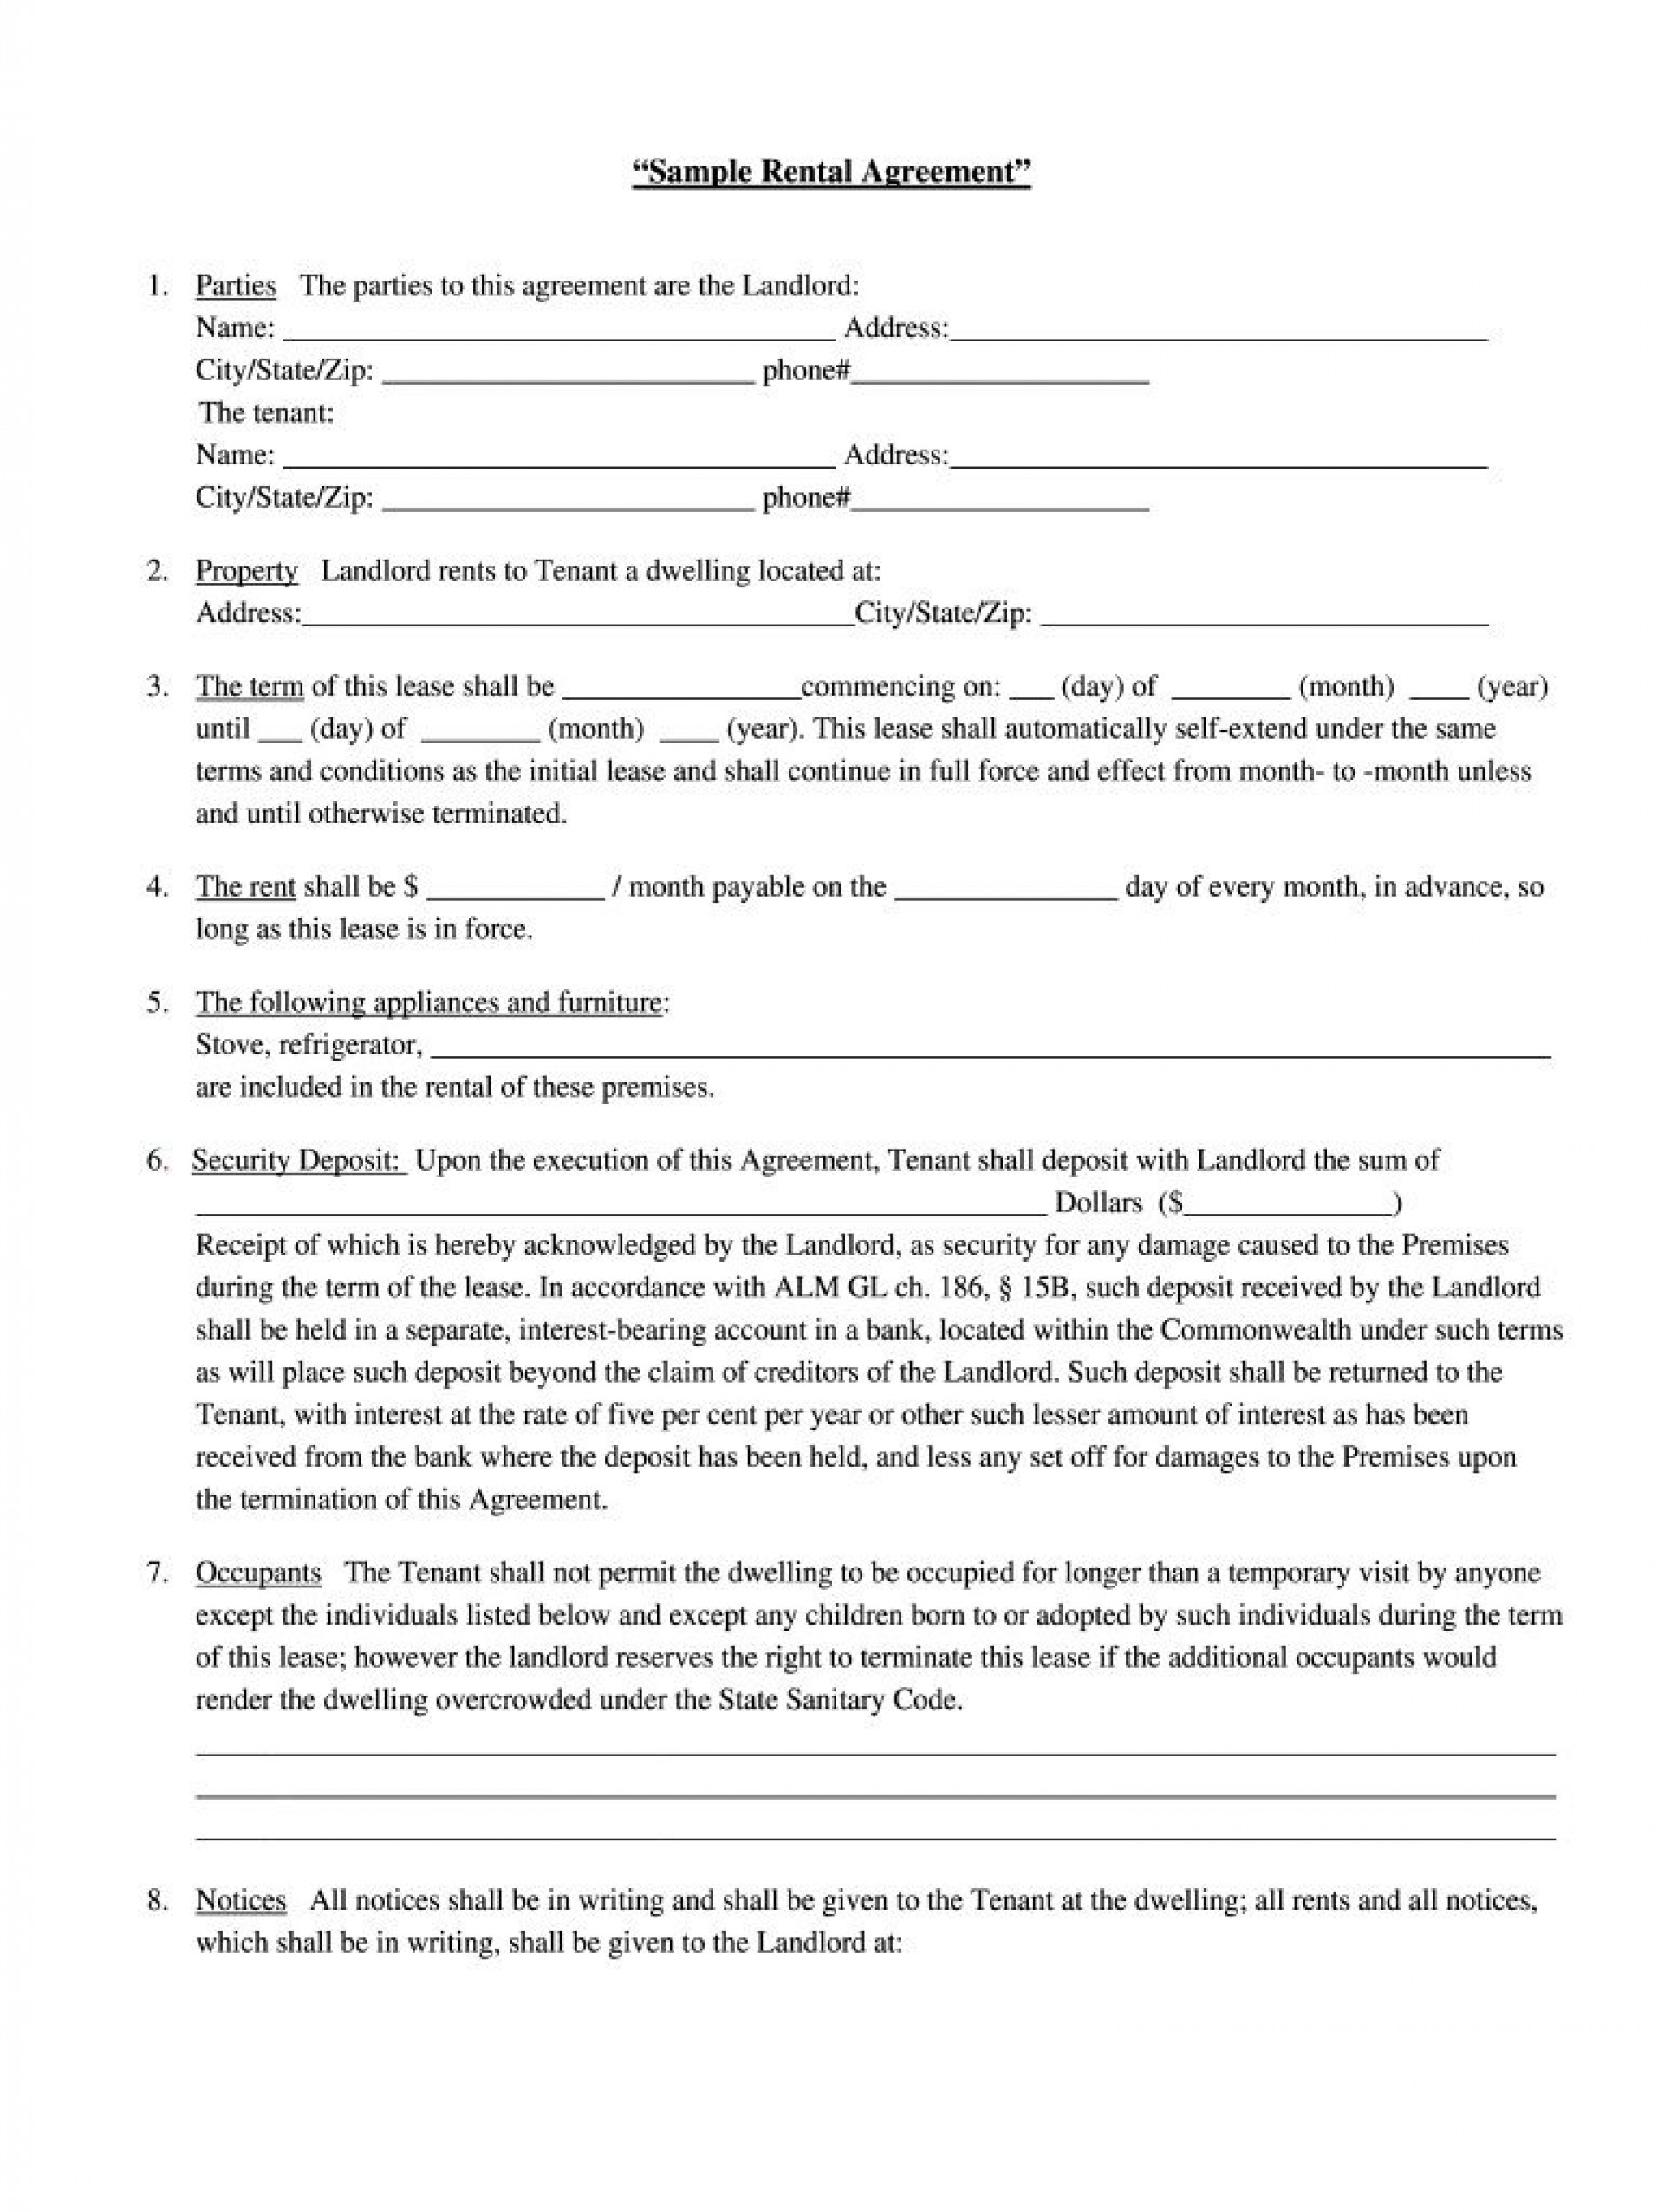 003 Amazing Renter Lease Agreement Template Concept  Apartment Form Early Termination Of By Tenant South Africa Free1920